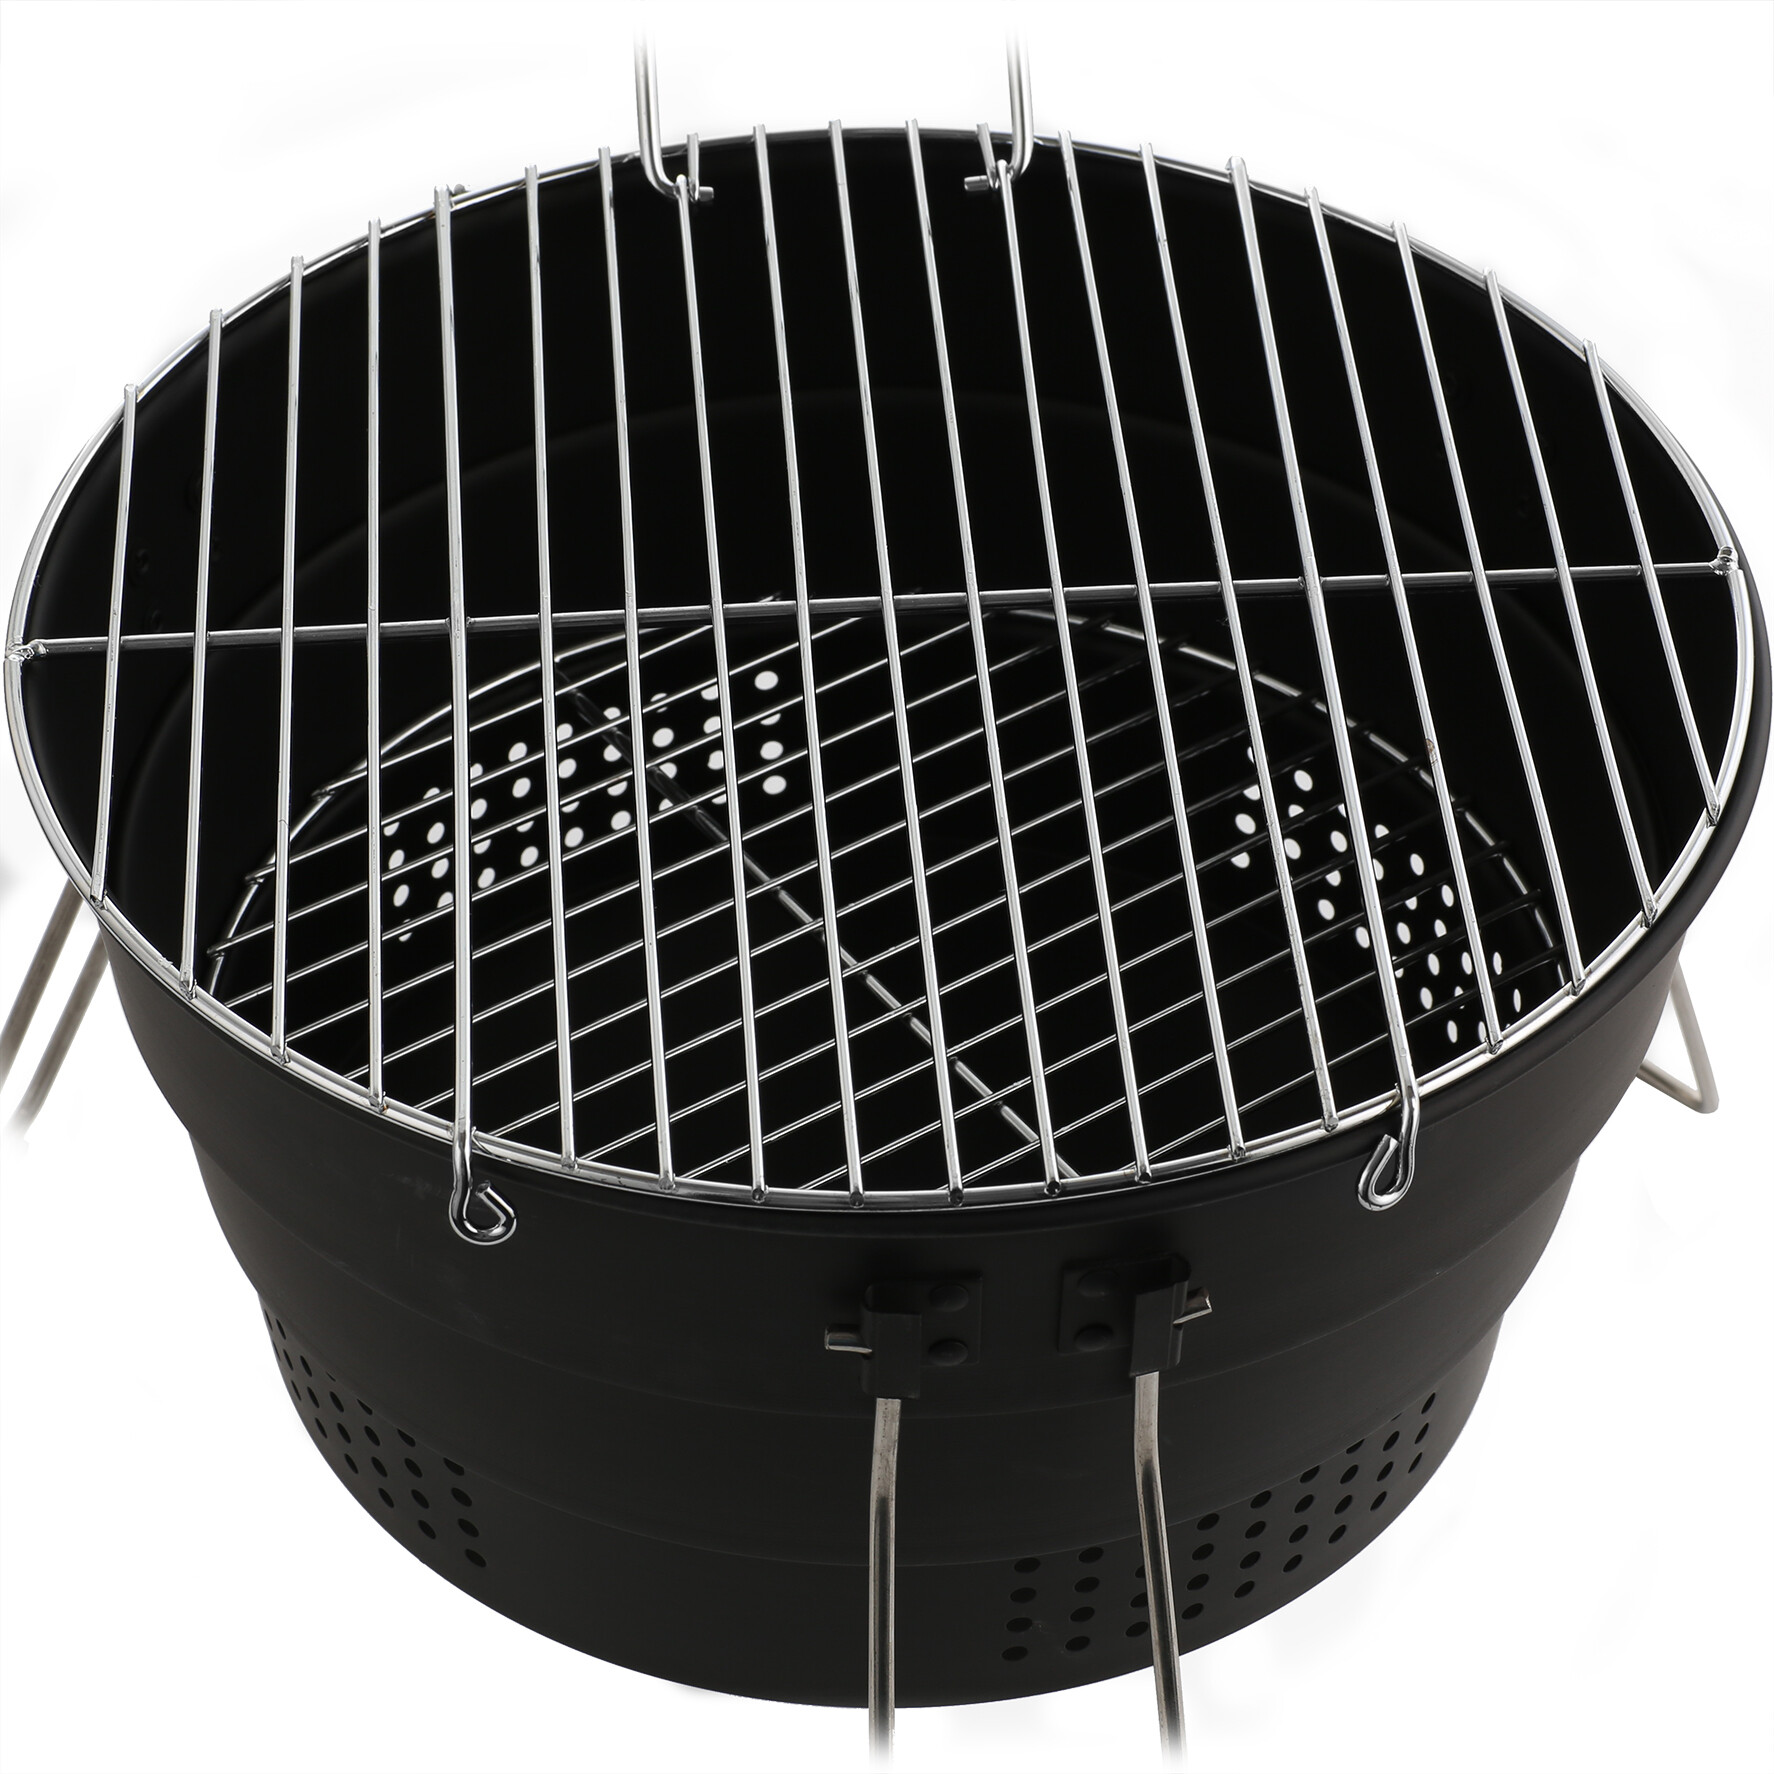 Relags Pop Up Grill l Online outdoor shop Campz.nl